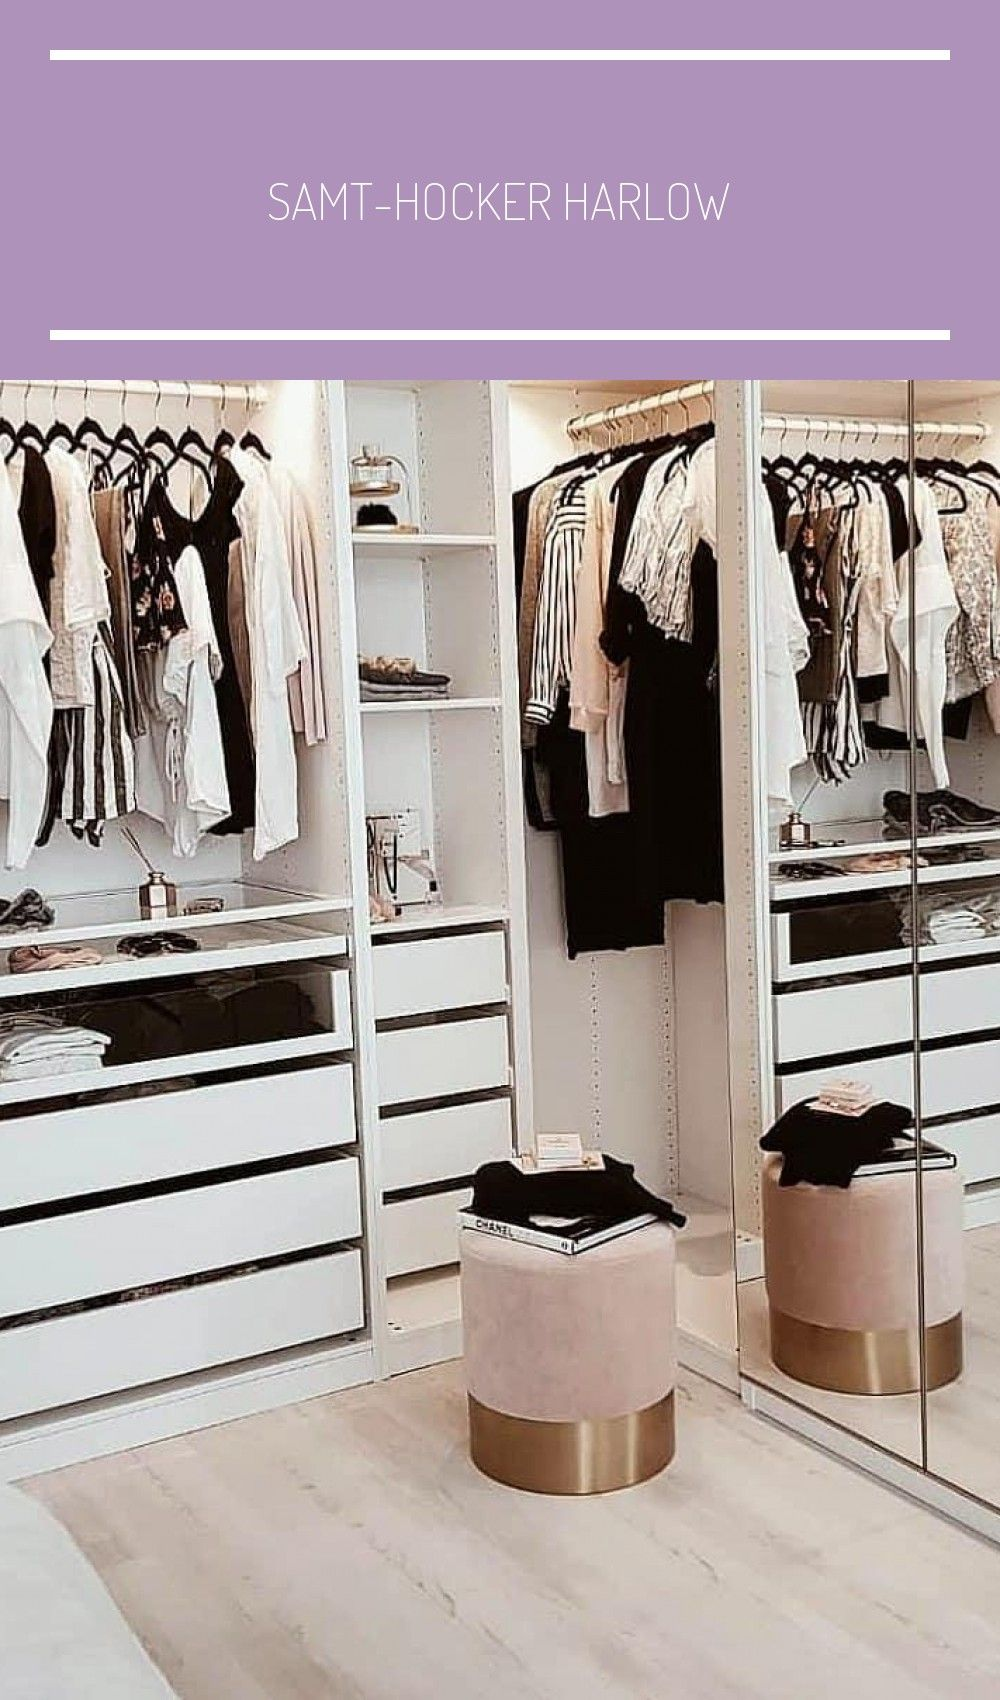 Samt Hocker Harlow In 2020 Dressing Room Design Bedroom Closet Design Wardrobe Room